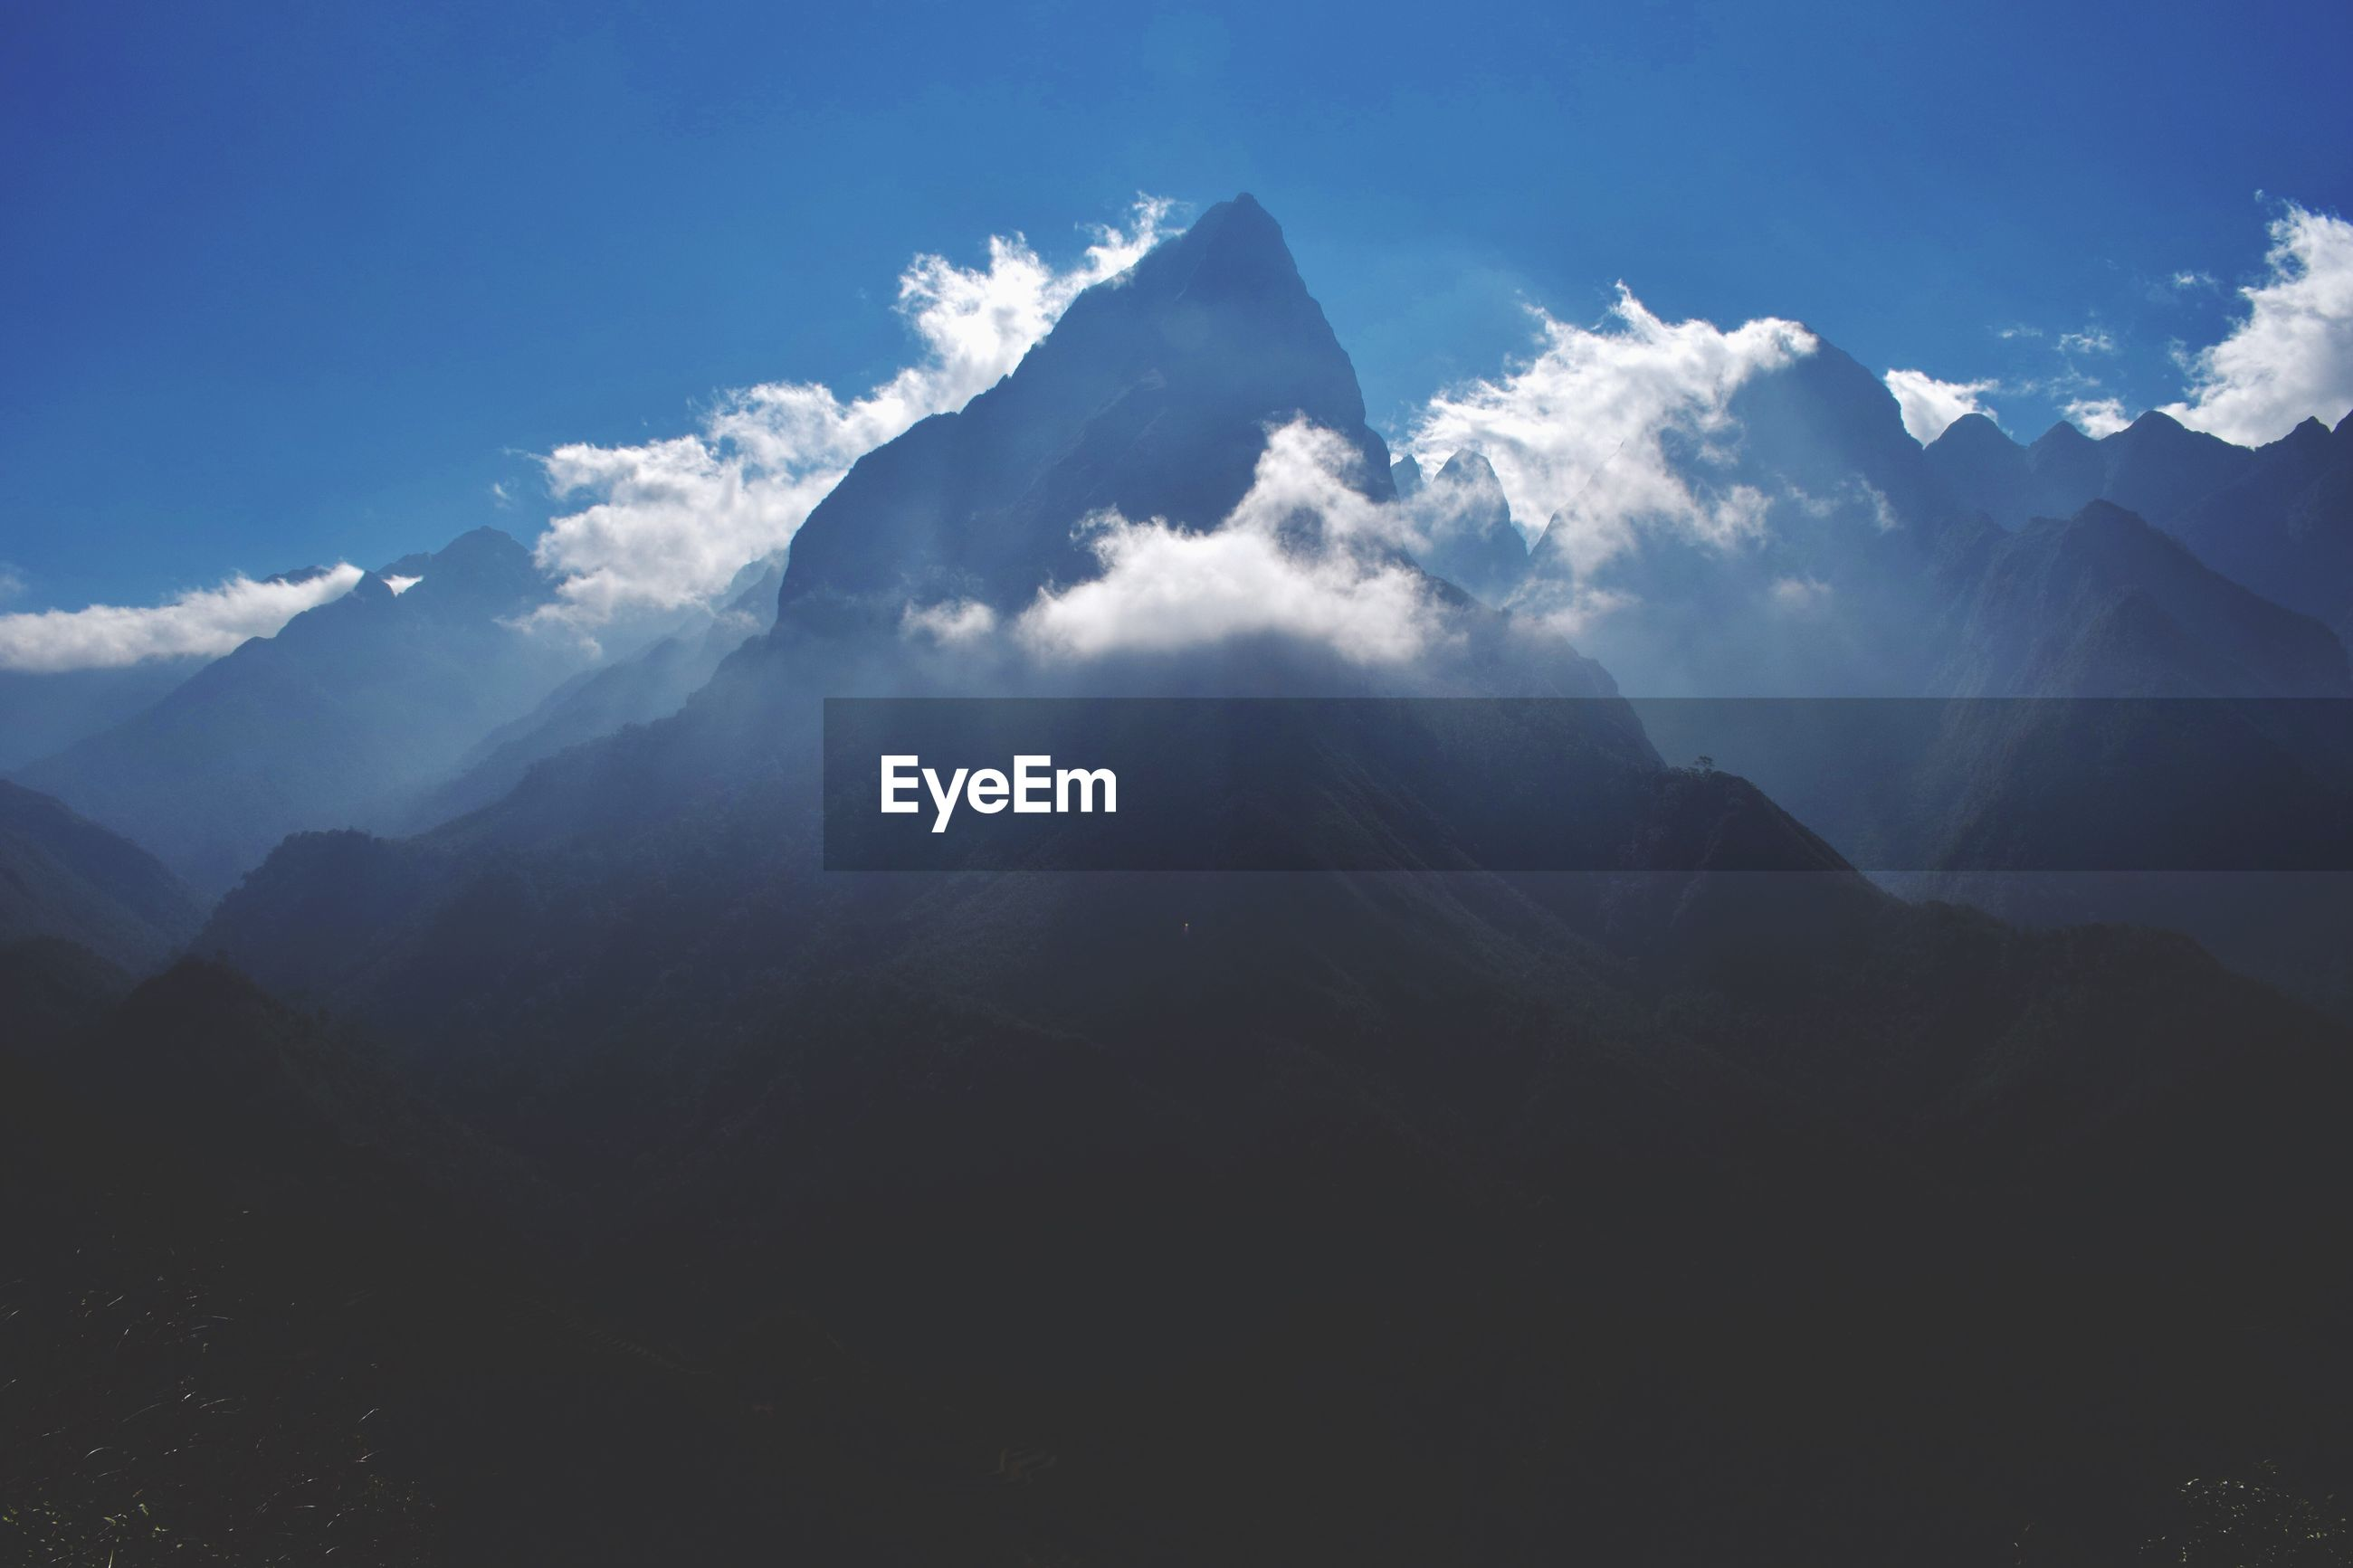 SCENIC VIEW OF CLOUDS OVER MOUNTAIN AGAINST SKY